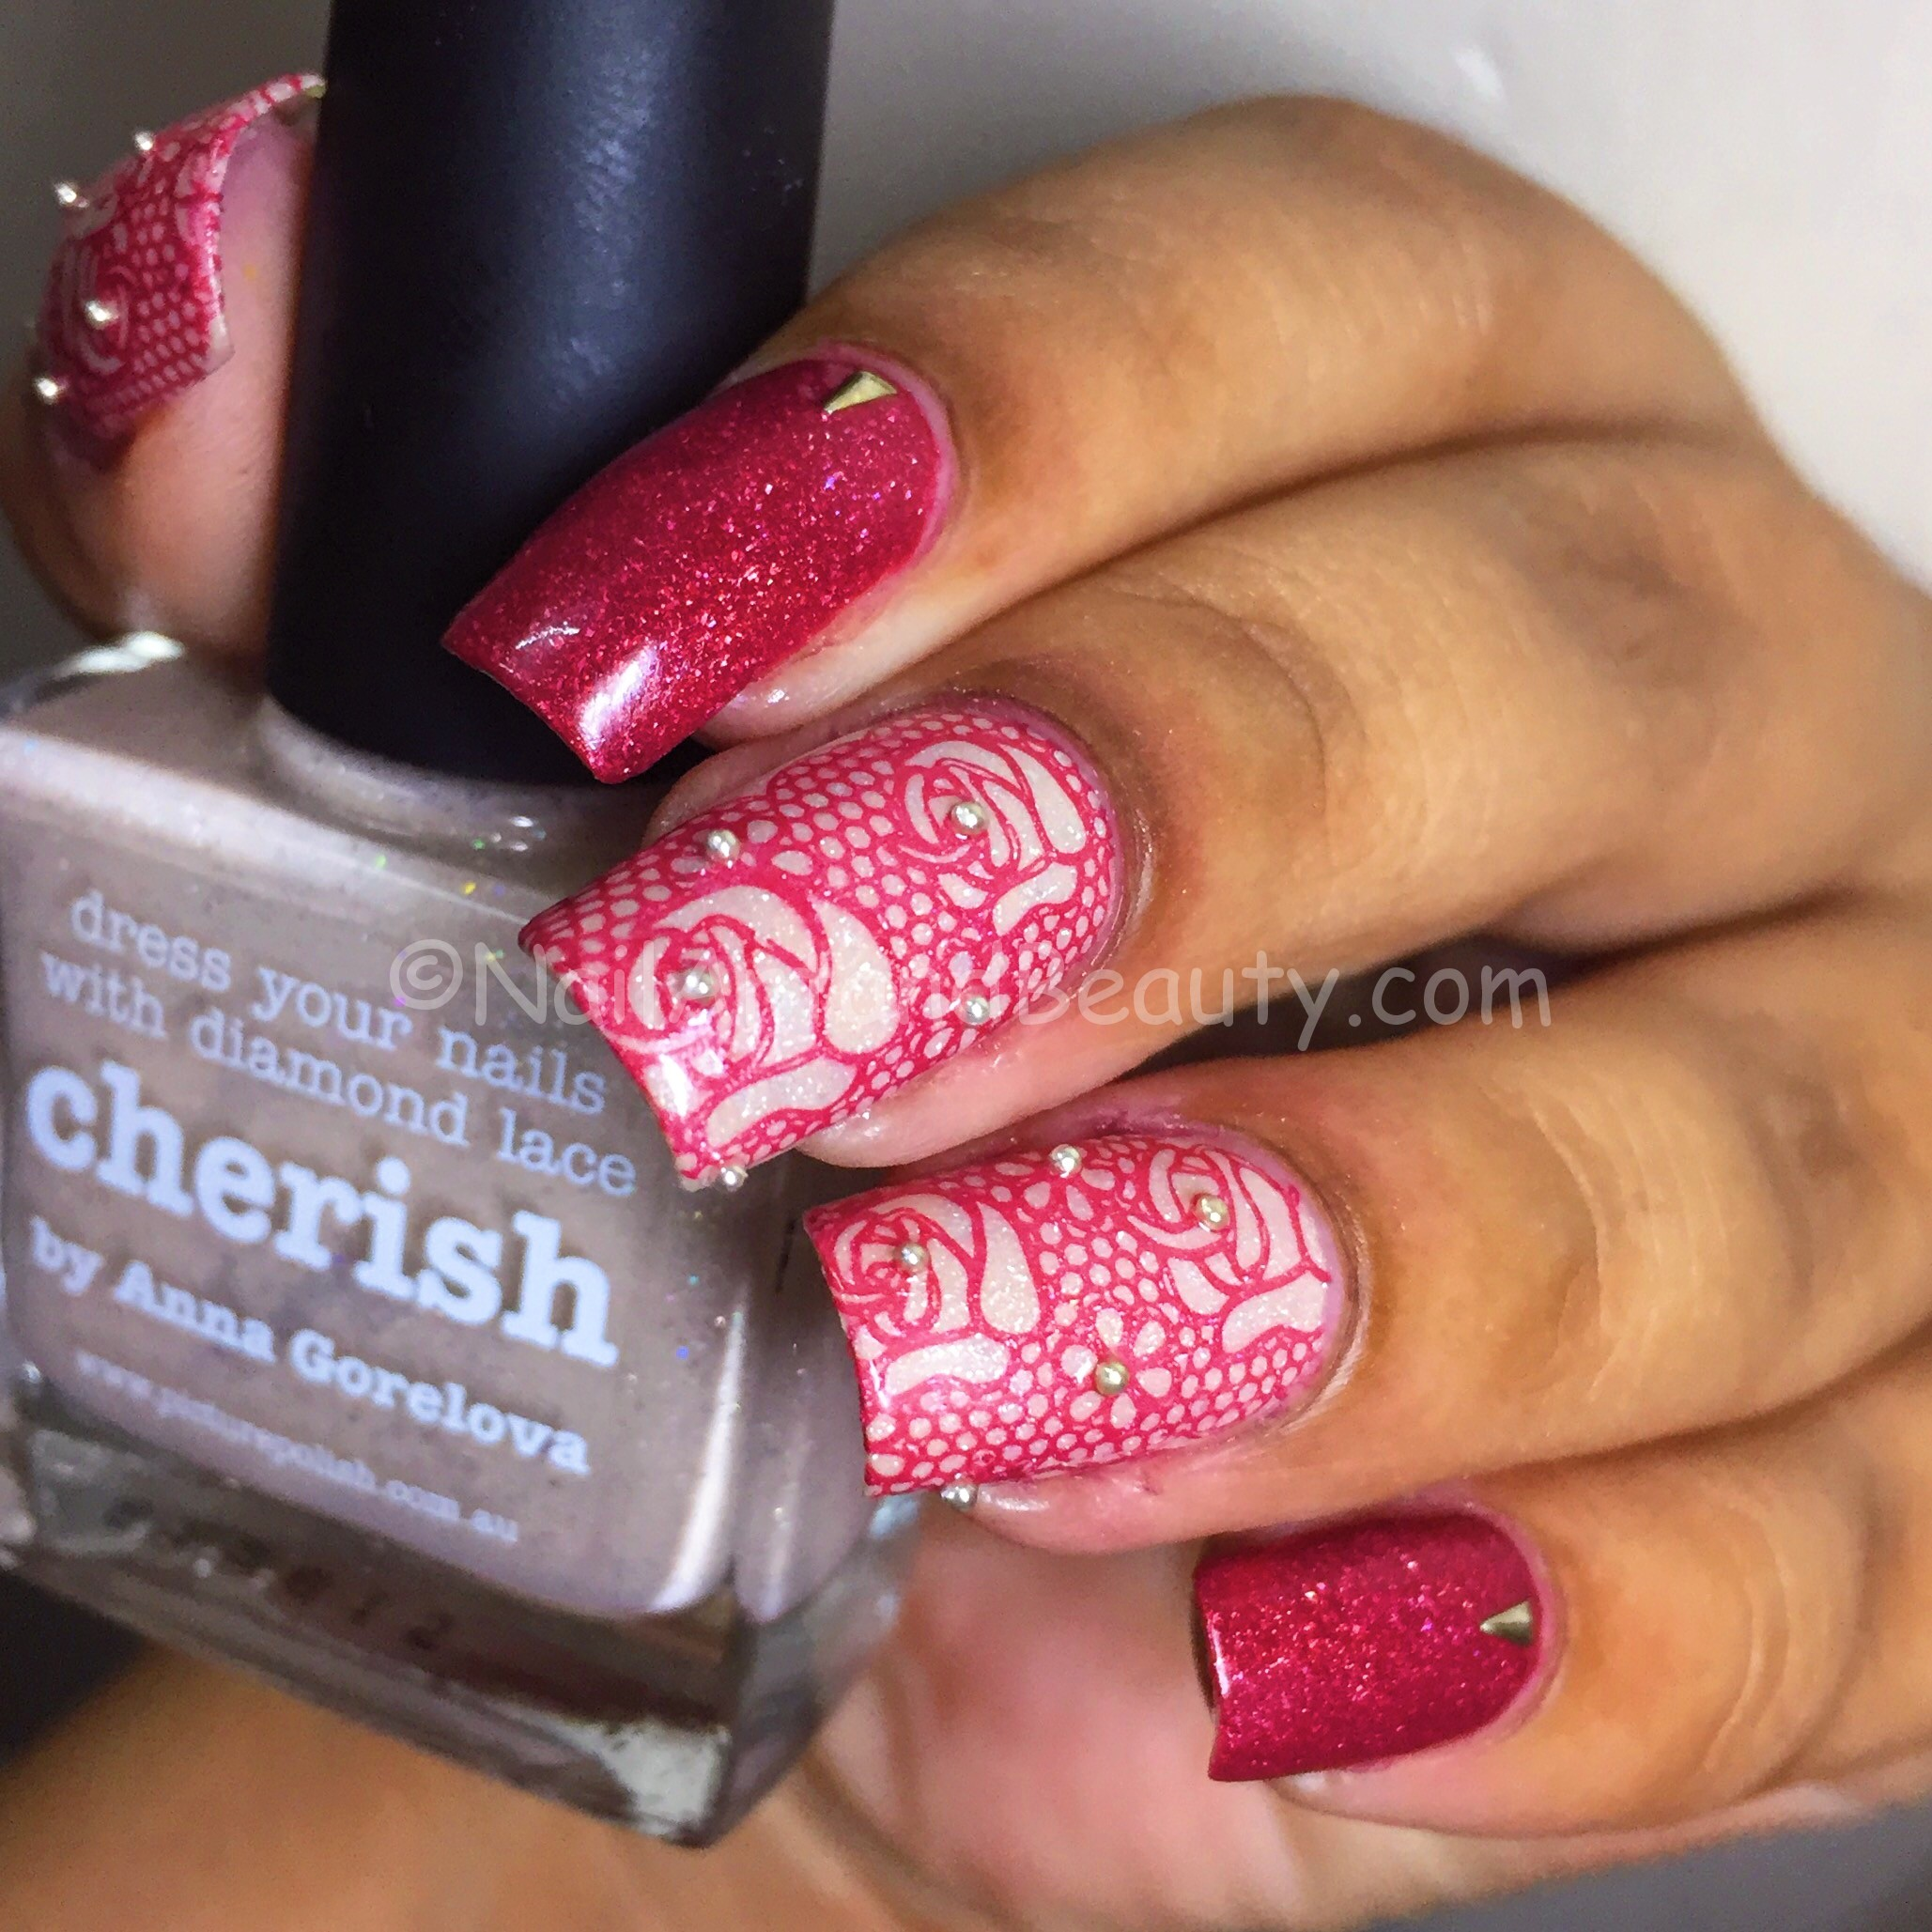 lace-nails-with-picture-polish-remember-and-merge